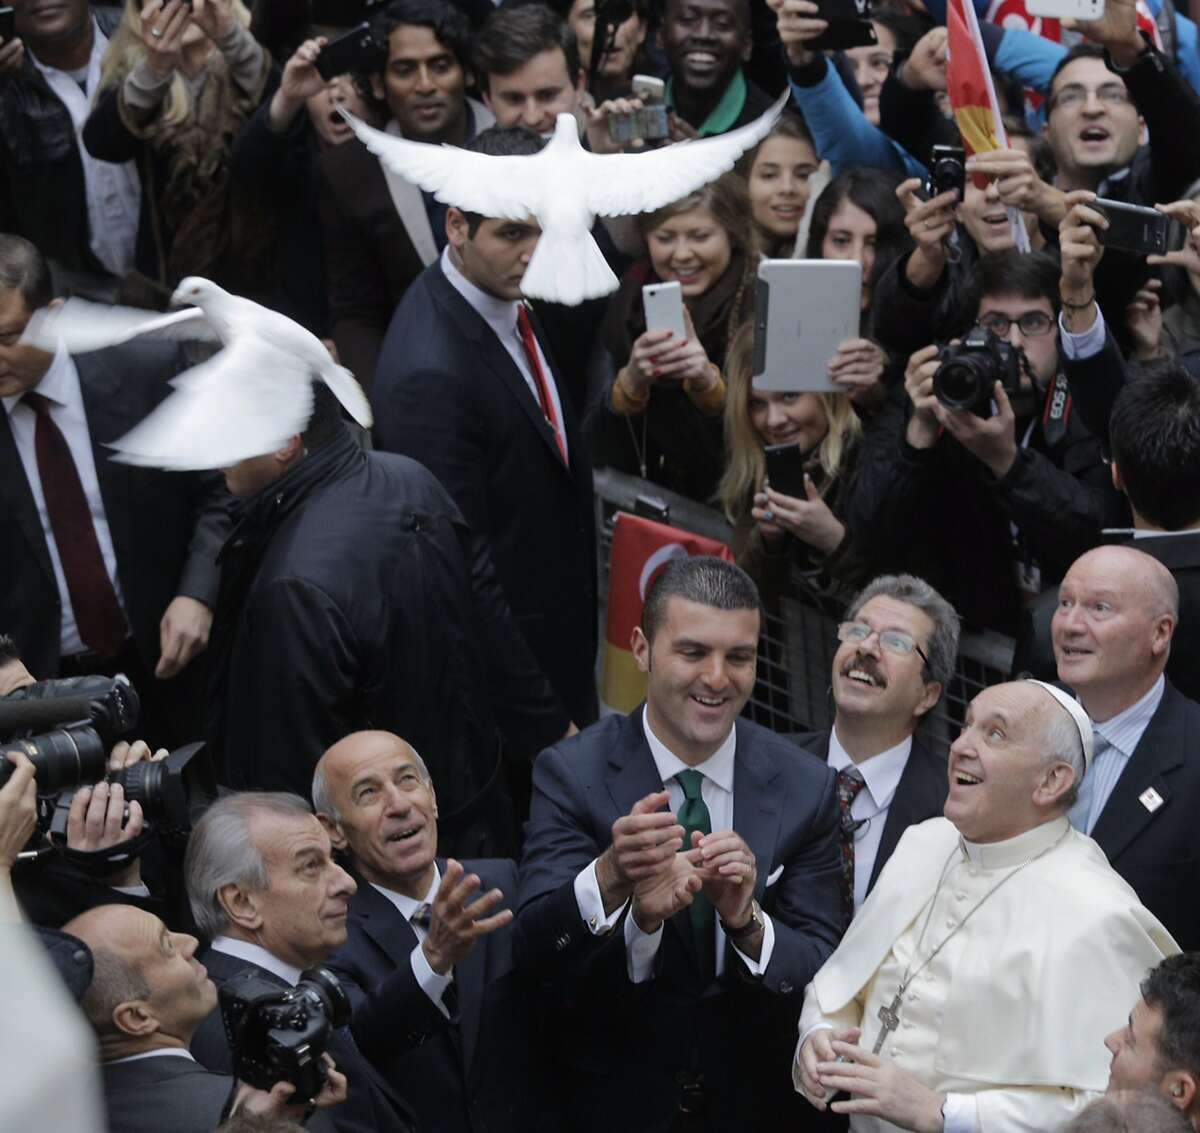 ISTANBUL, TURKEY - NOVEMBER 29: In this handout image provided by the Sisli Municipality Press Office, Pope Francis releases a white dove prior to delivering a Holy Mass at the Catholic Cathedral of the Holy Spirit on November 29, 2014 in Istanbul, Turkey. Pope Francis arrived in Turkey on Friday at a sensitive moment for the Muslim nation, as it cares for 1.6 million refugees and faces the continued threat of the Islamic State group who have been advancing into areas near Turkey's southern border. (Photo by Sisli Municipality Press Office via Getty Images) *** BESTPIX ***